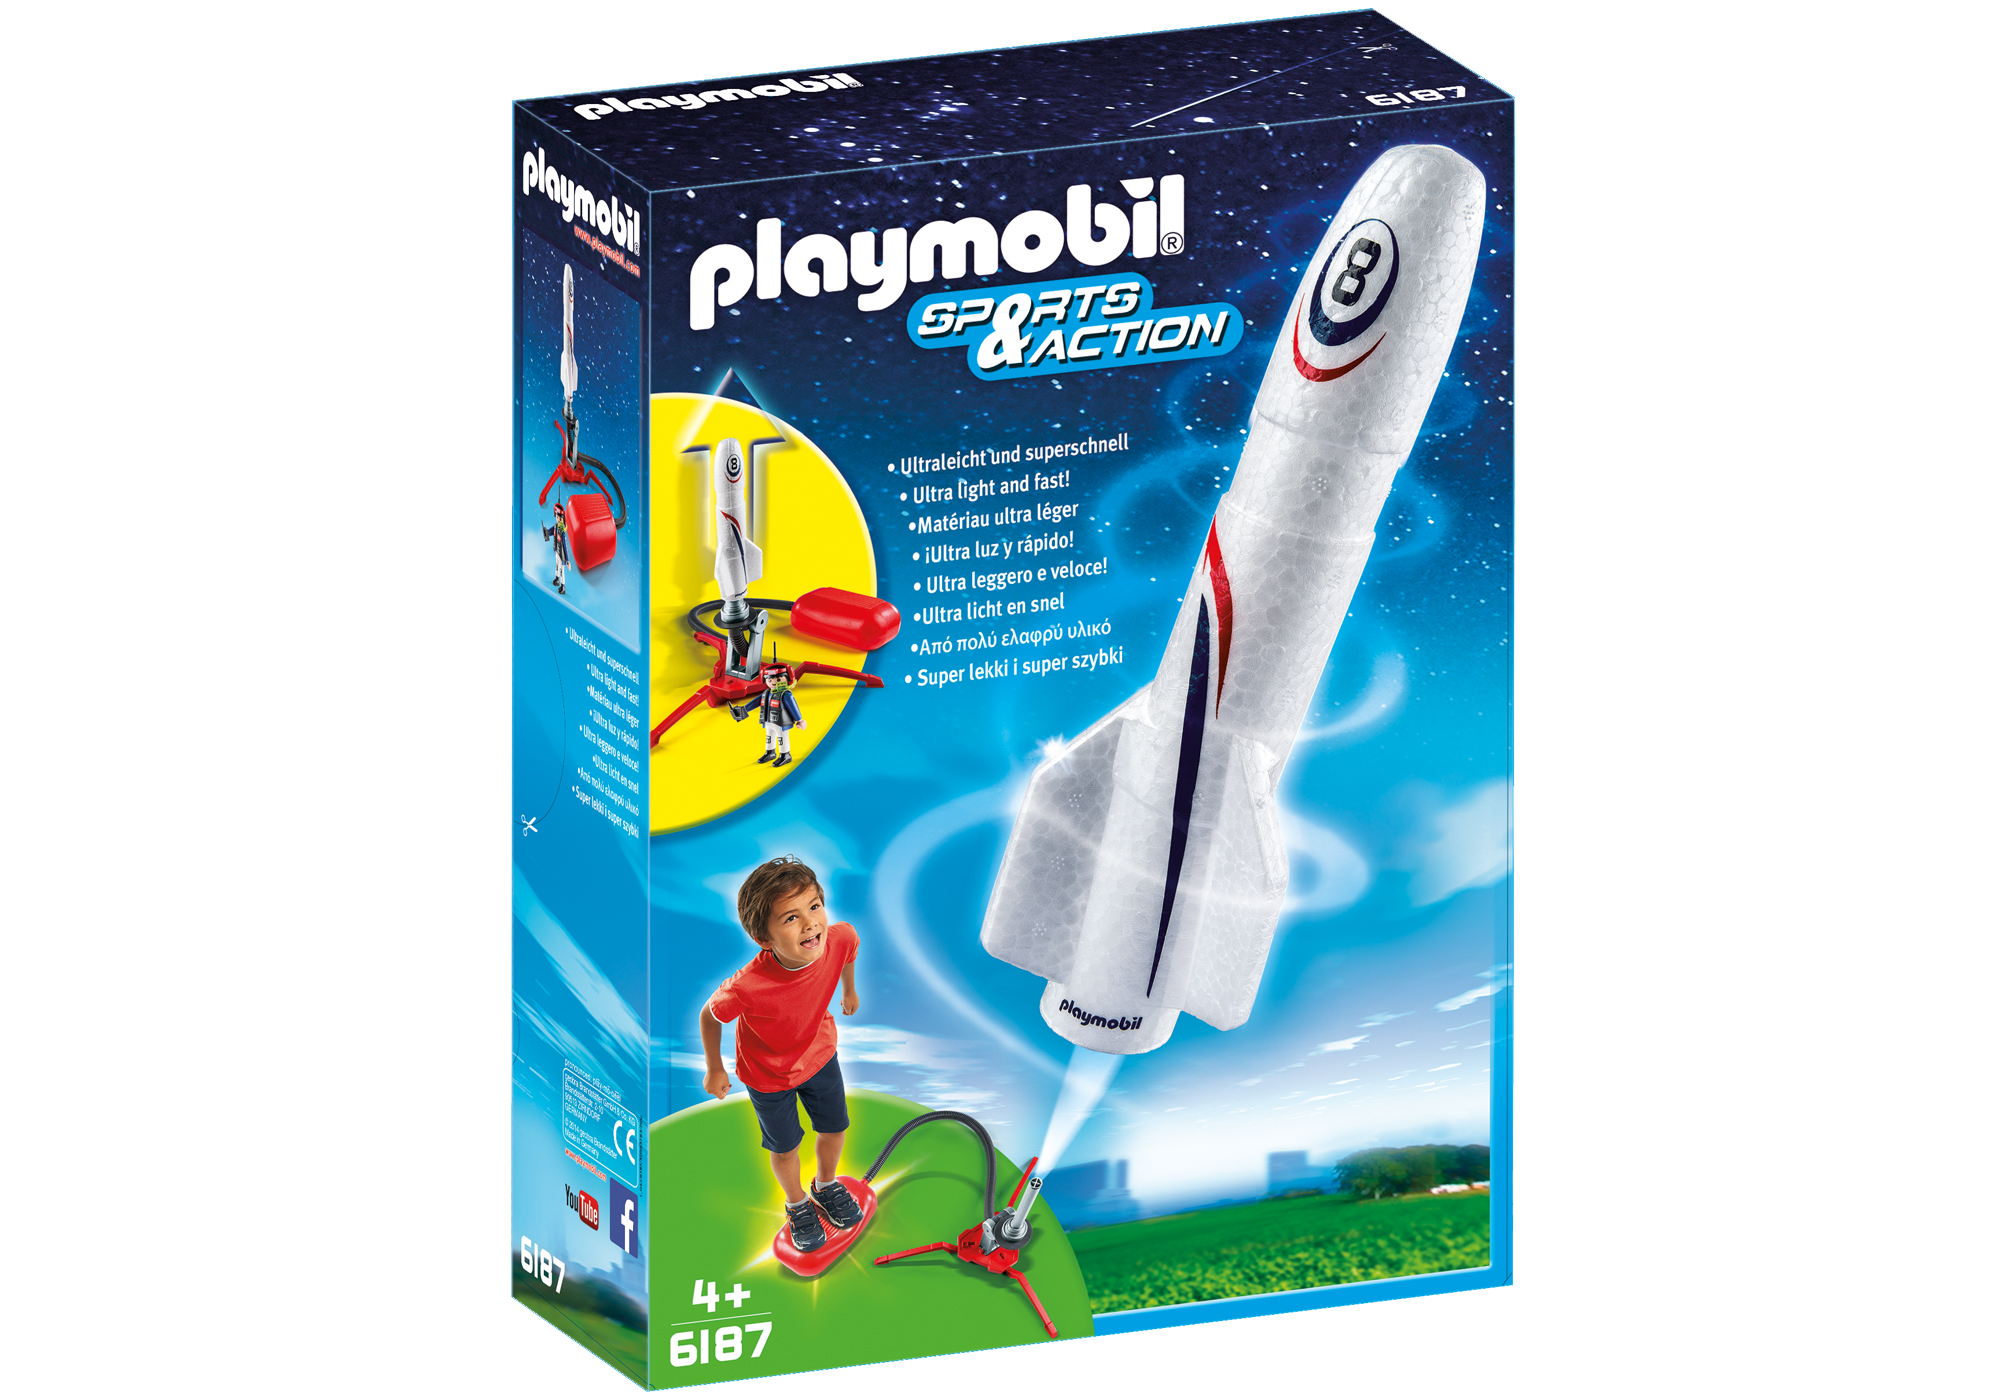 http://media.playmobil.com/i/playmobil/6187_product_box_front